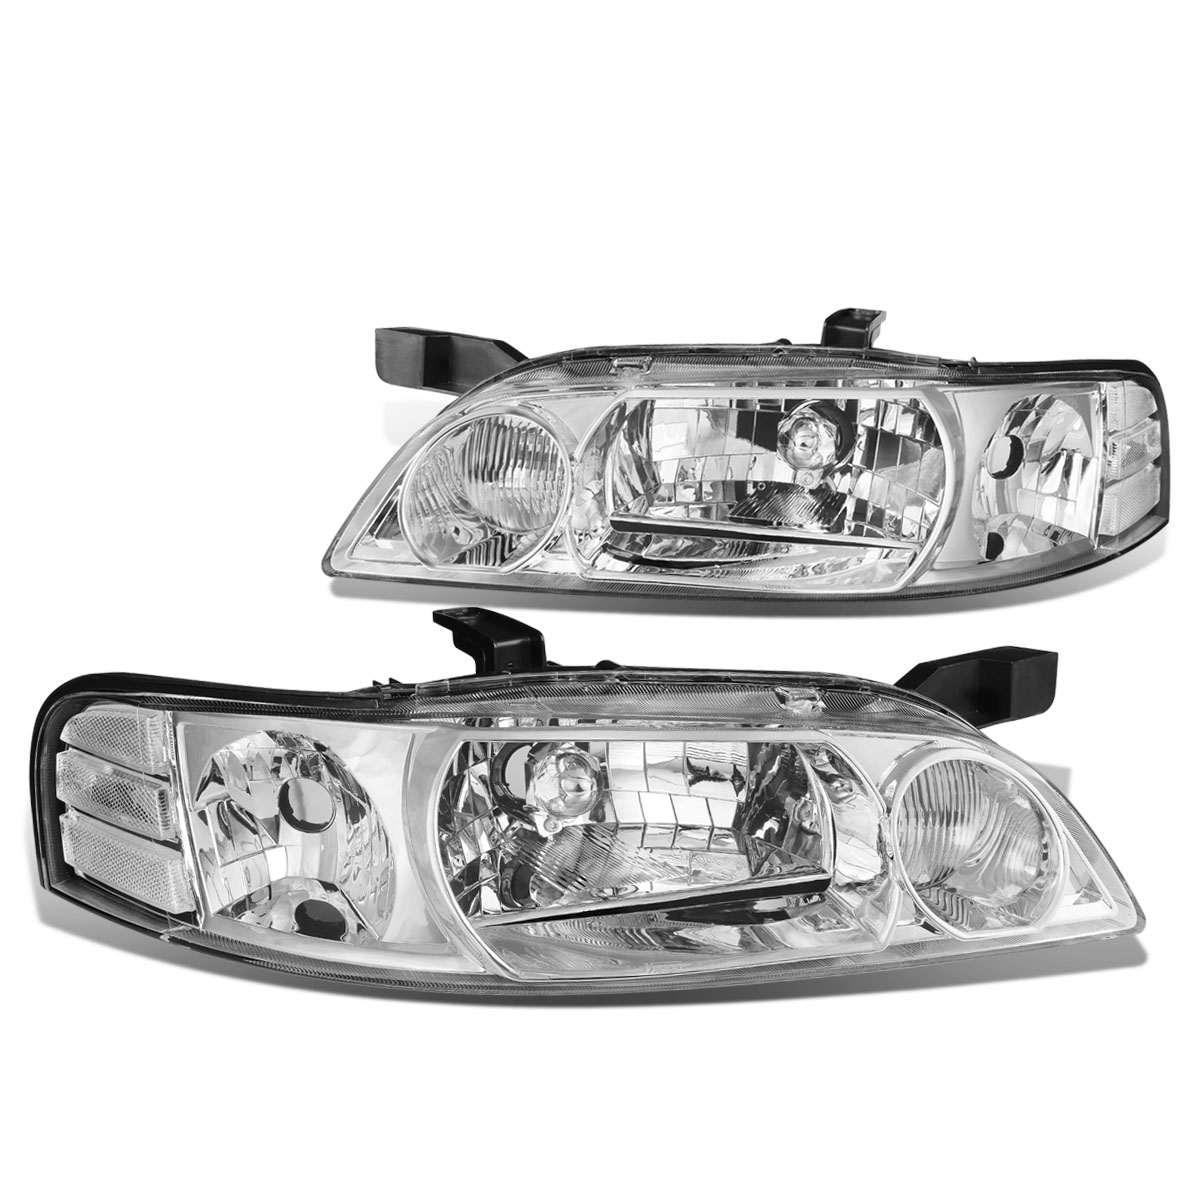 For 00-01 Nissan Altima Replacement Black Housing Clear Corner Headlight//Lamps